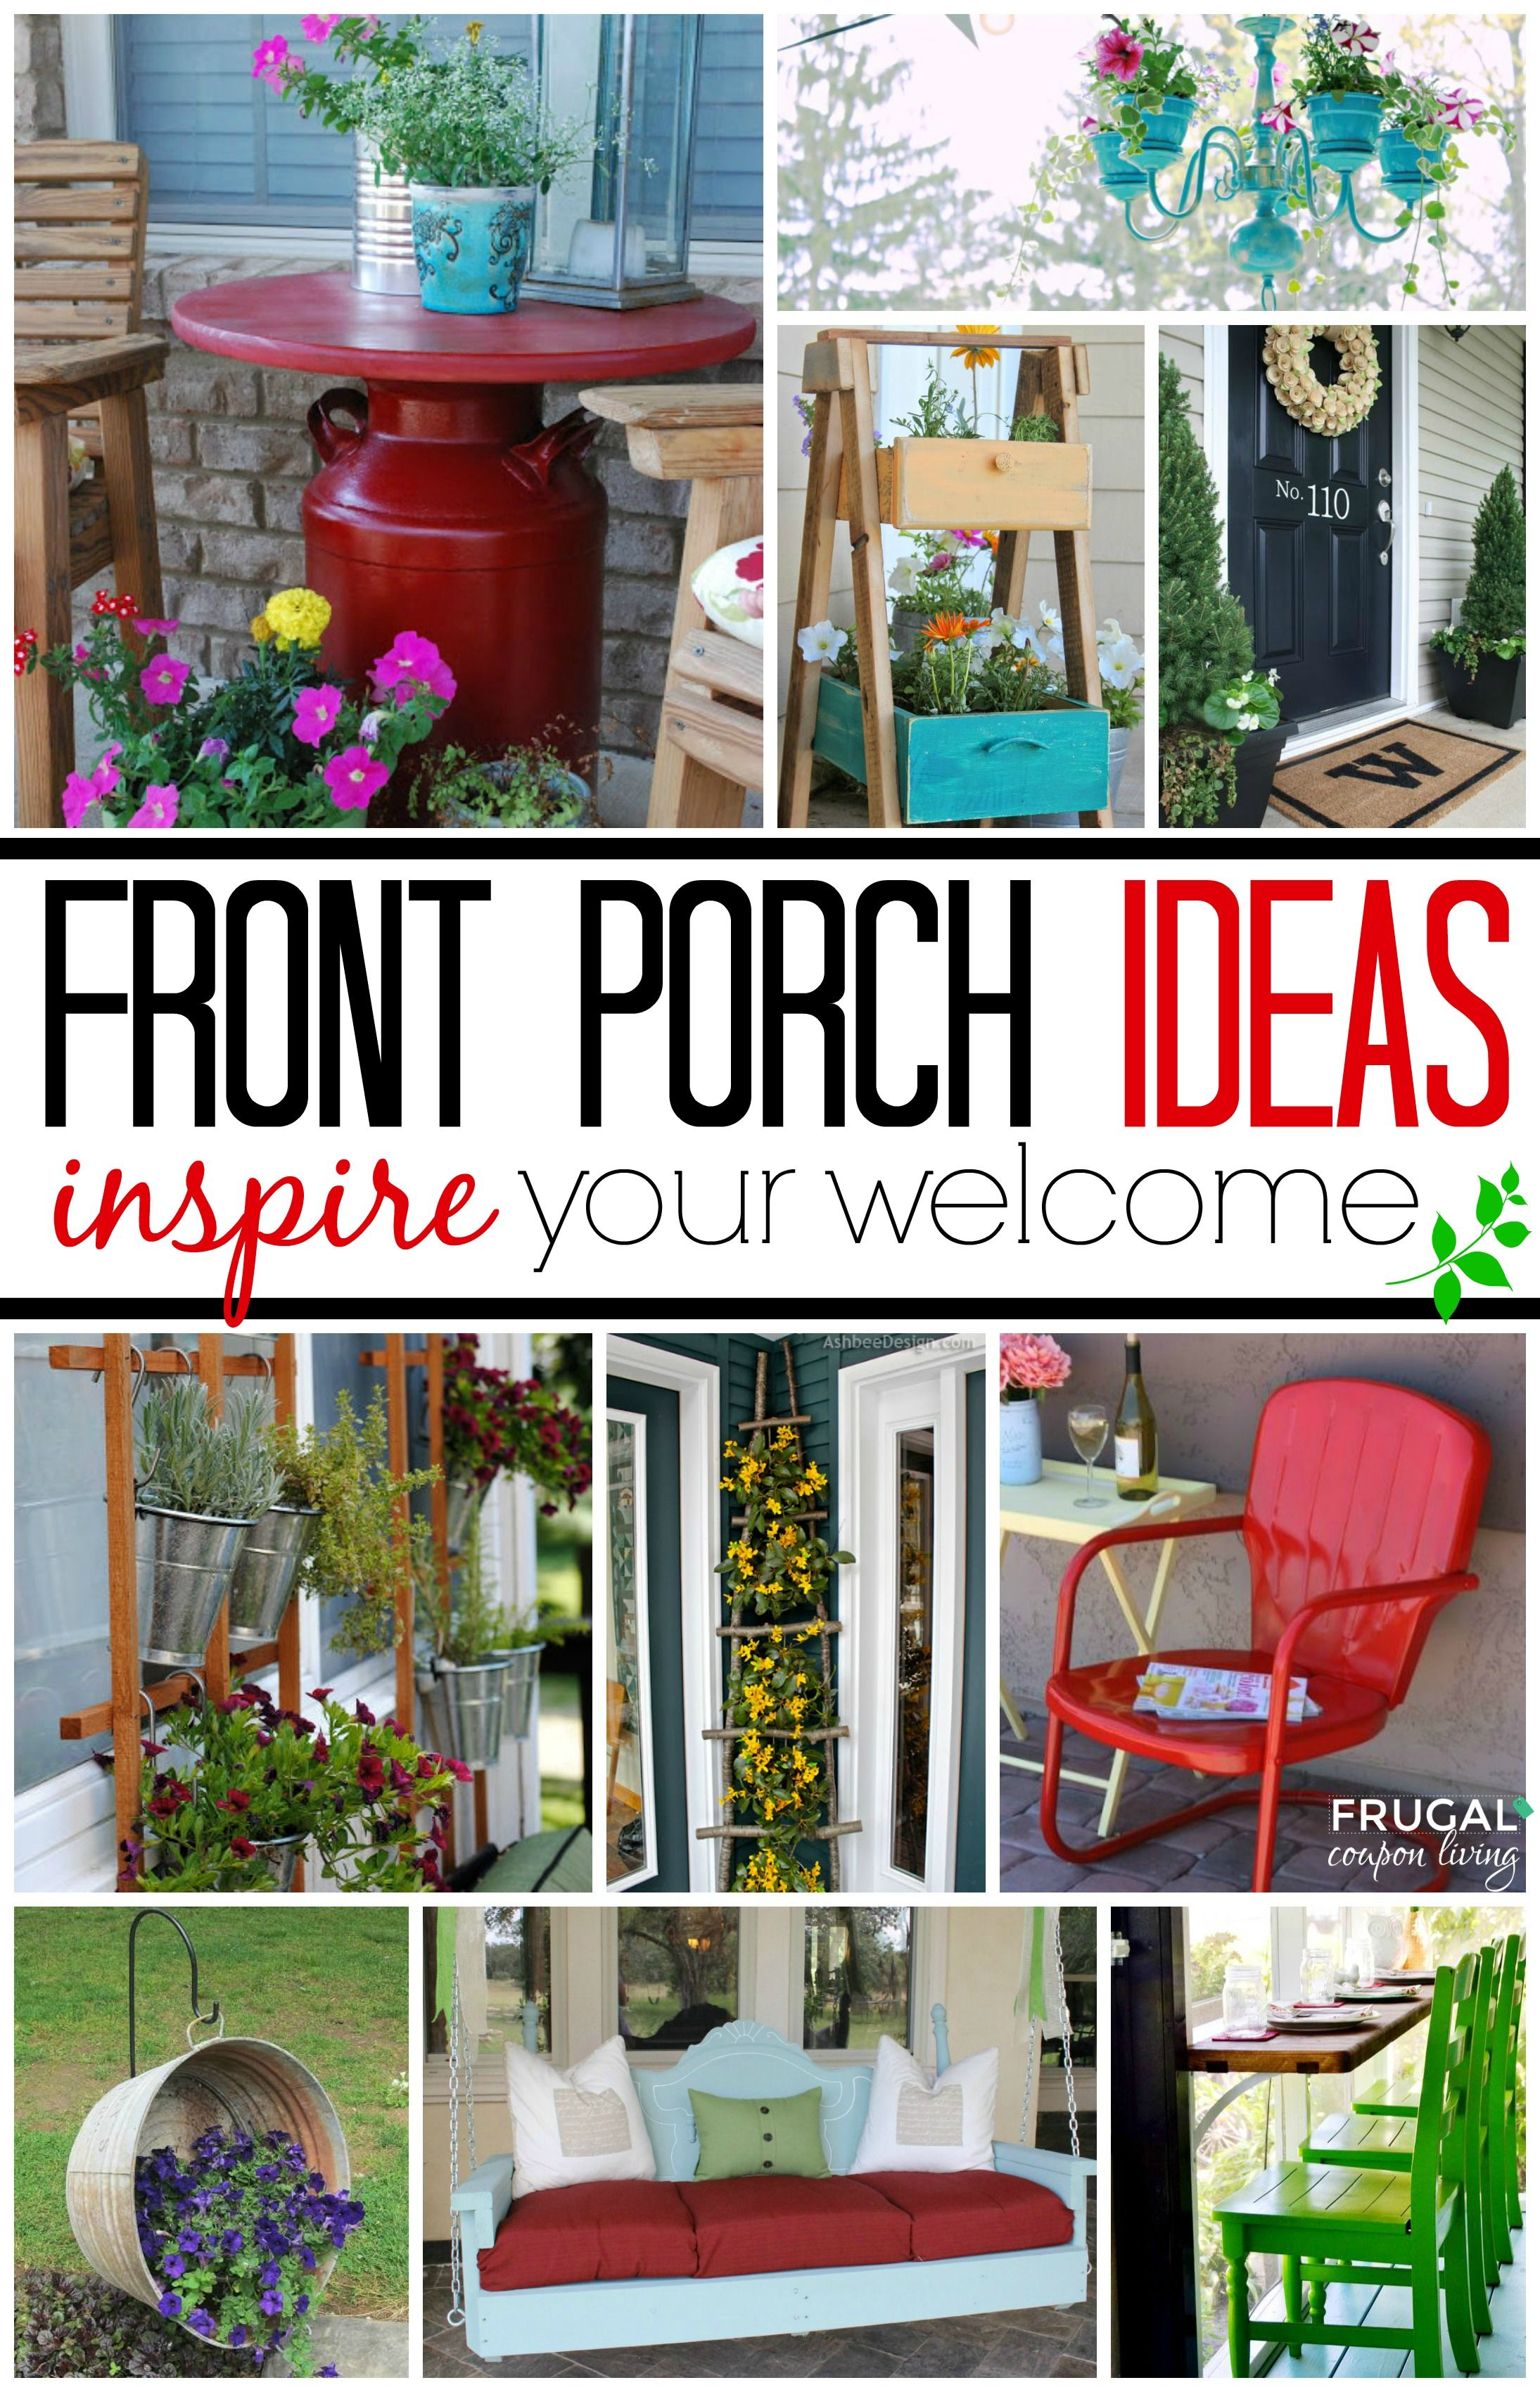 Front Porch Ideas   Inspire Your Welcome This Spring! Spring Cleaning Ideas  And More Ways